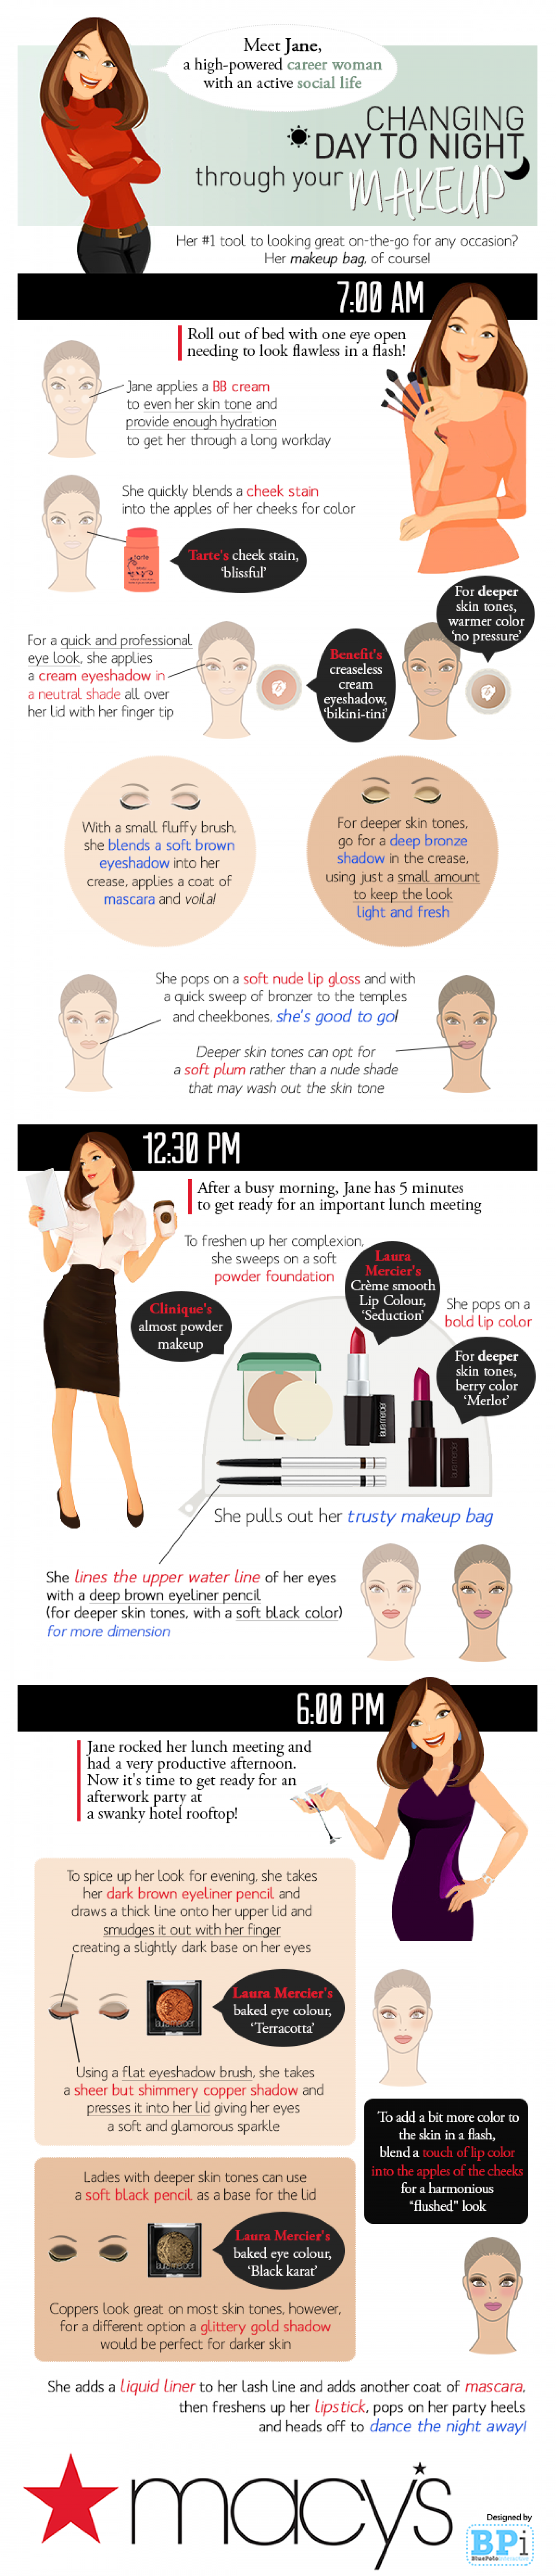 Changing From Day to Night Through Your Makeup Infographic